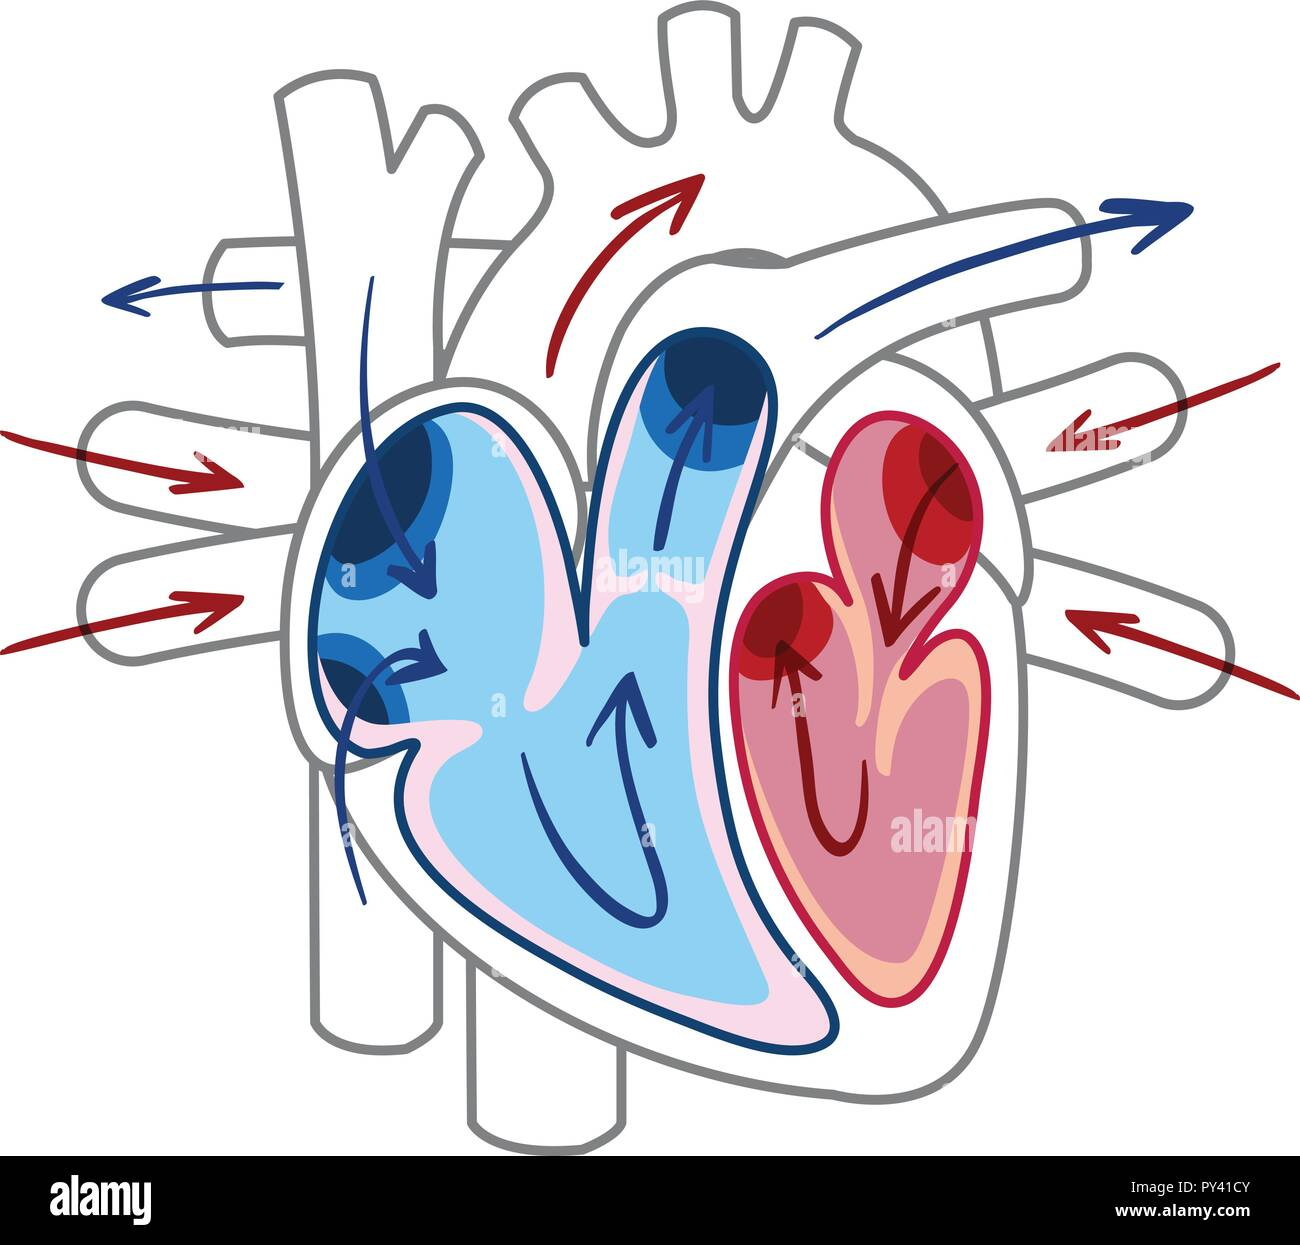 hight resolution of blood flow of the heart diagram illustration